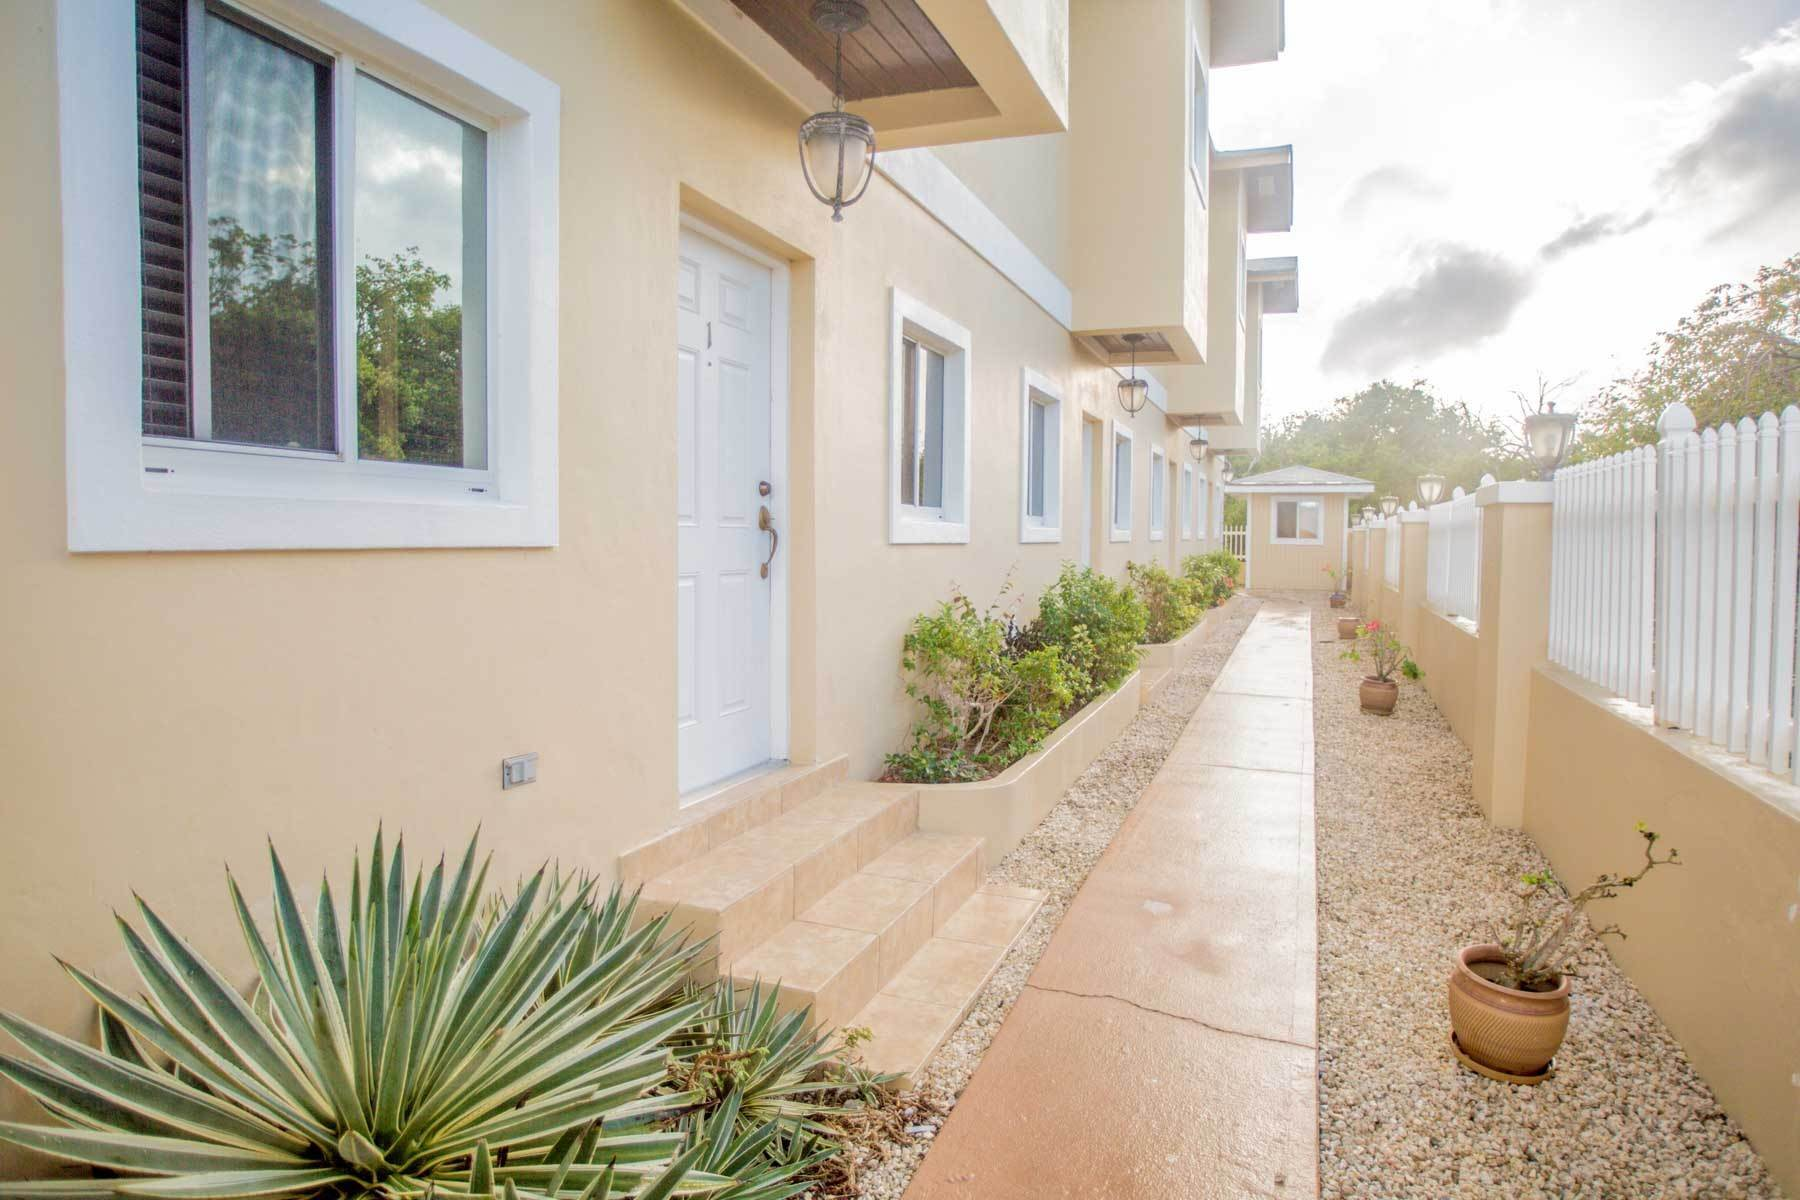 Co-op / Condo for Sale at Executive TownHouse Suites - MLS 43565 George Town, Exuma, Bahamas